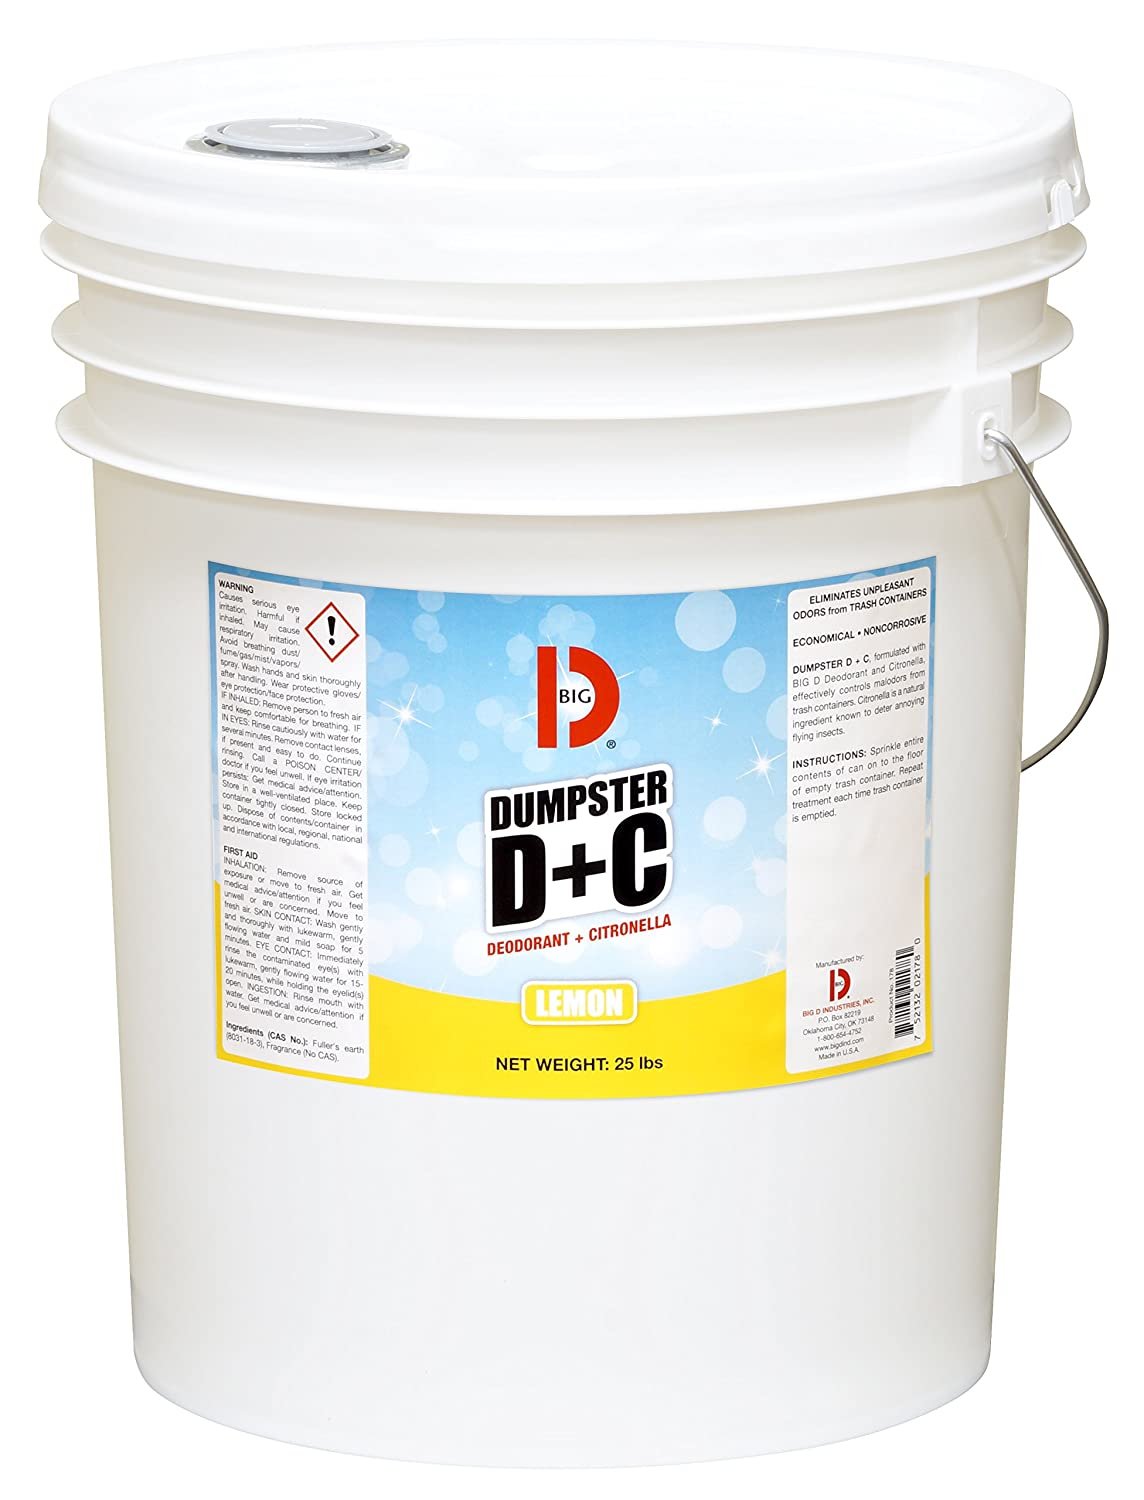 Big D Industries 178 Limited time sale Dumpster Bucket Neutral Plus 25lb Los Angeles Mall C